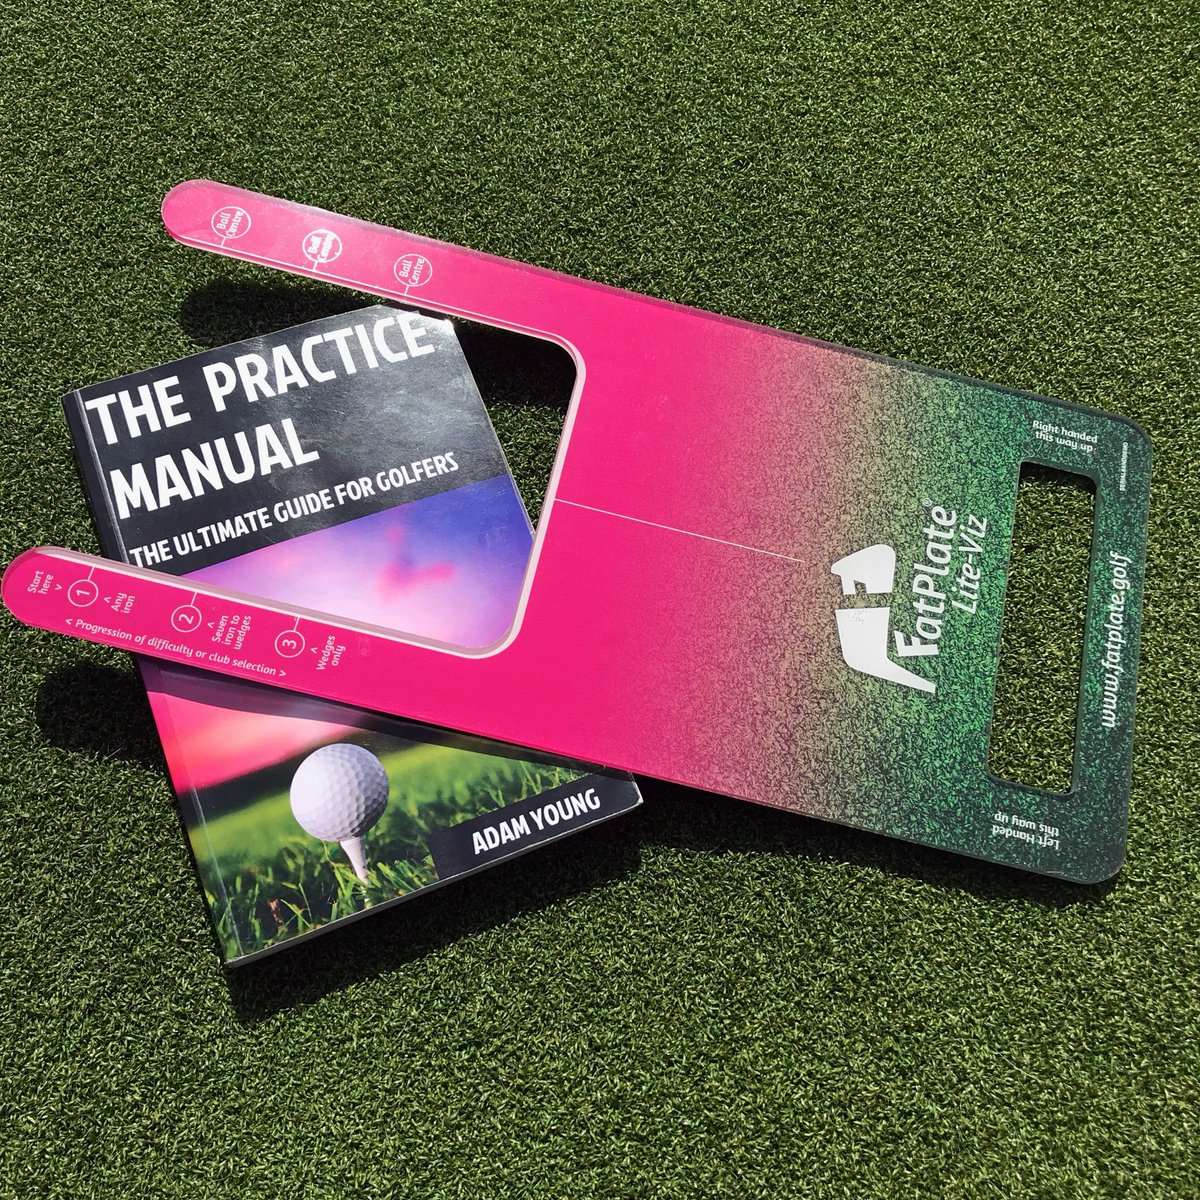 For a chance to win an @fatplate.golf LIte-Viz Hot Pink & a copy of The Practice Manual by @adamyounggolf then all you have to do is: 1. Follow Us 2. Follow Adam 3. RT, Like, Share etc.  #practicesmarter #ballthenturf #arevolutionhasarrived #asseenonthegolfchannel